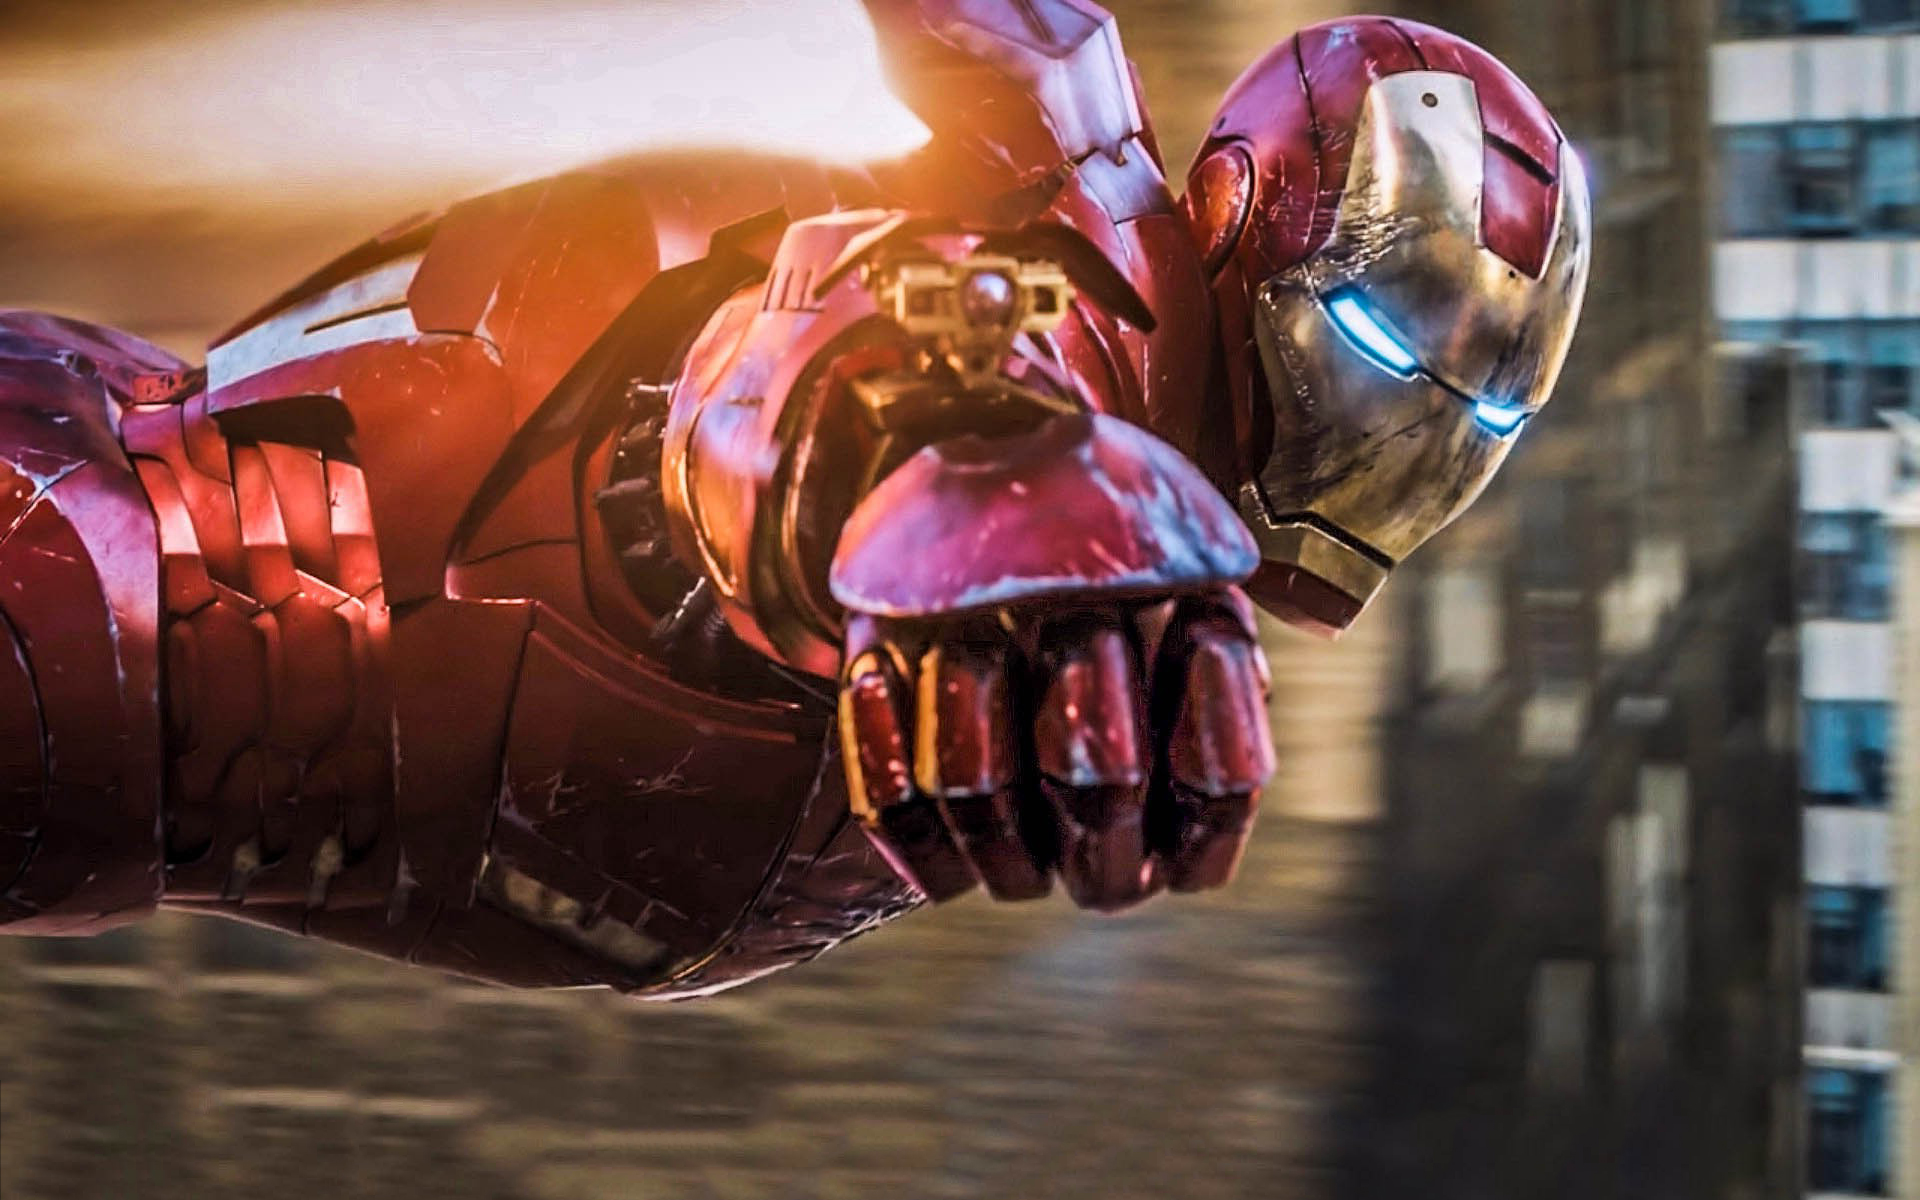 Iron Man Wallpapers Hd 1080p Iron Man Full Hd 74550